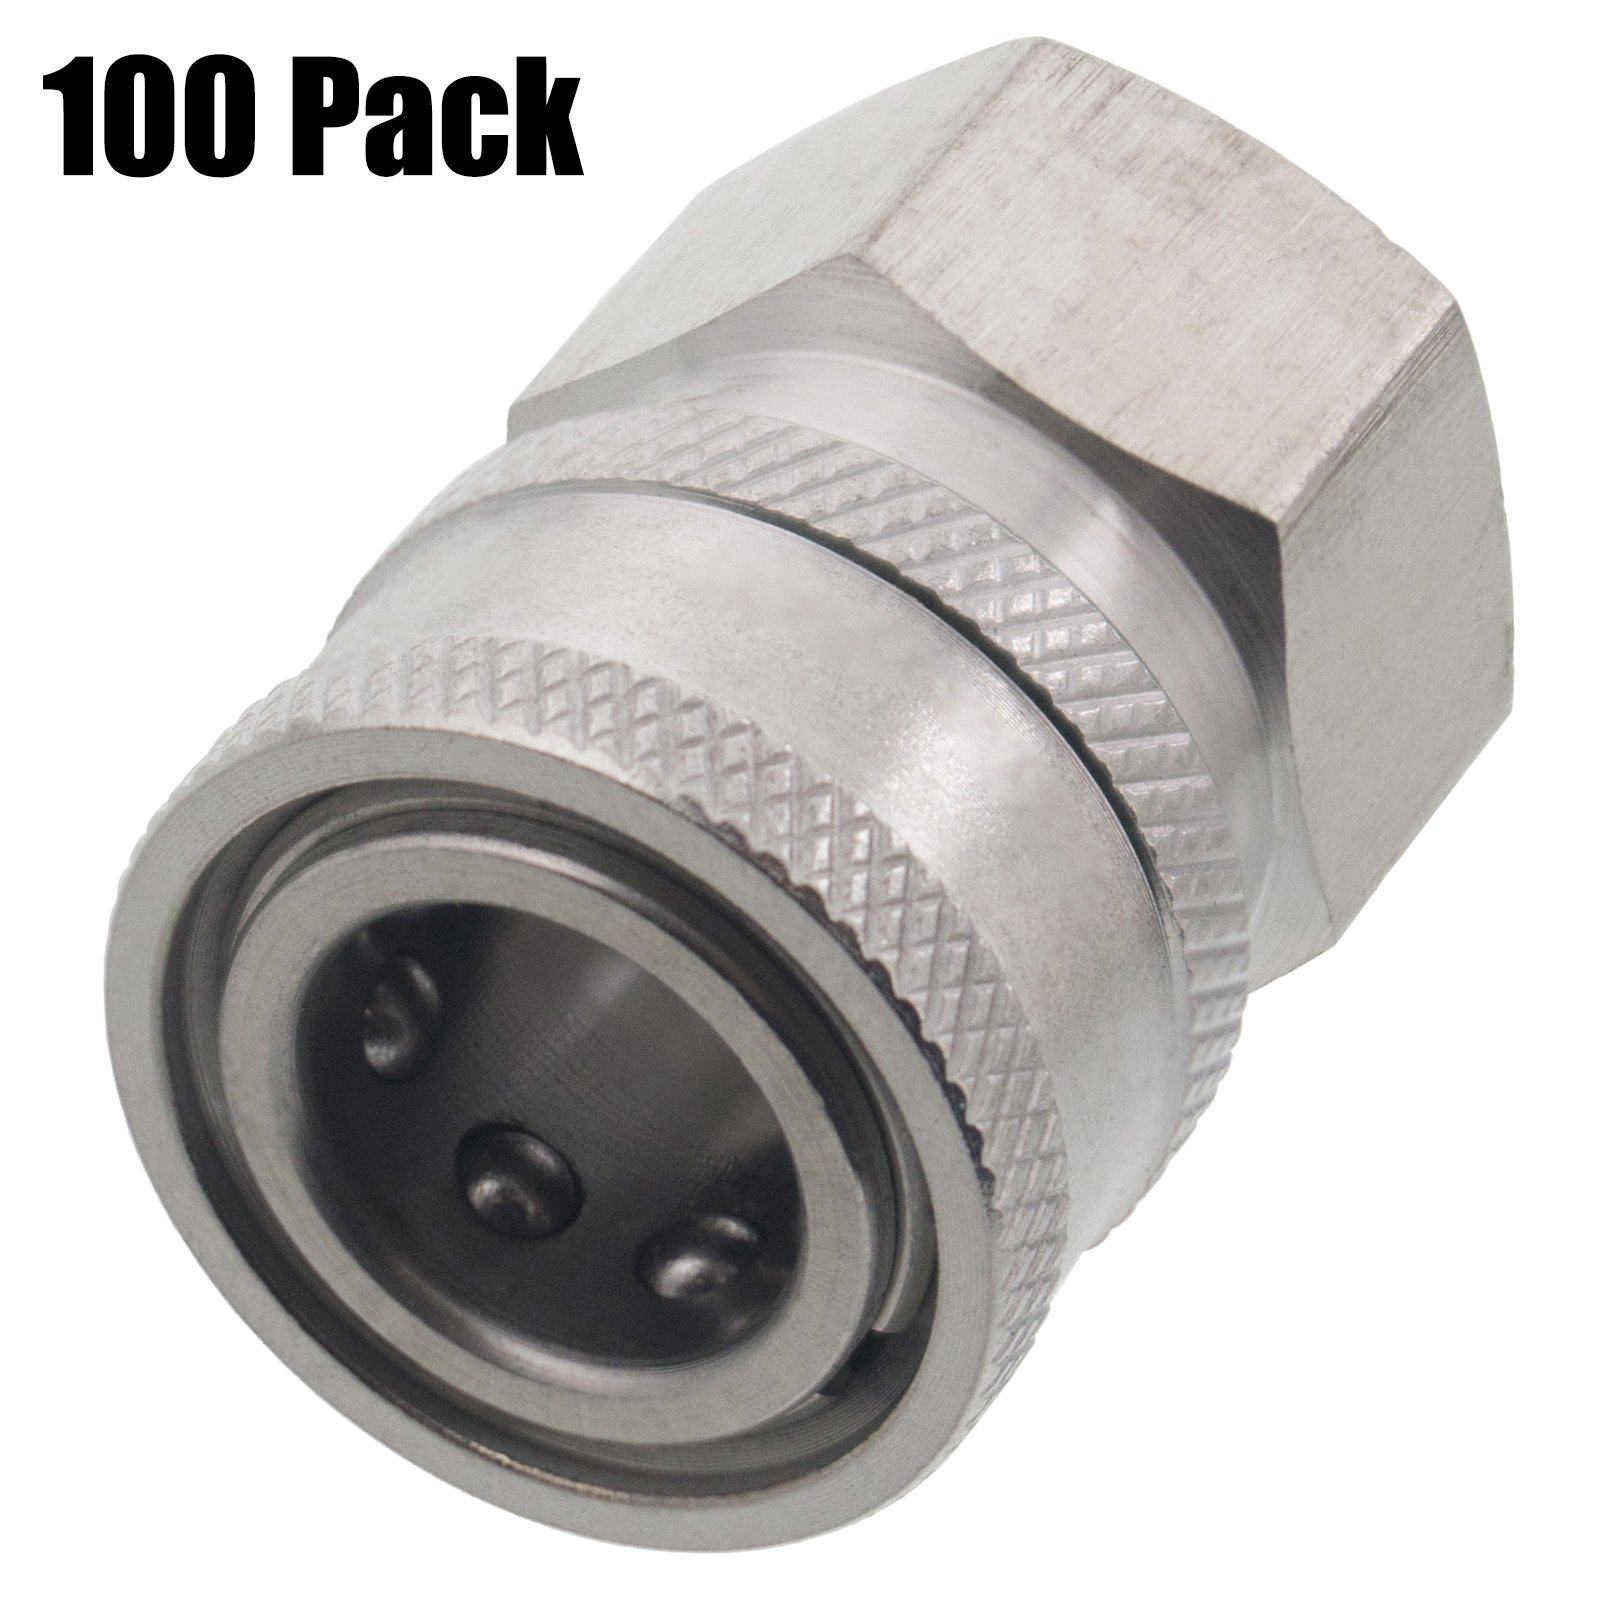 Erie Tools 100 3/8in. FPT Female Stainless Steel Socket Quick Connect Coupler 5000 PSI 10 GPM for Pressure Washer Nozzle Gun Hose Wand